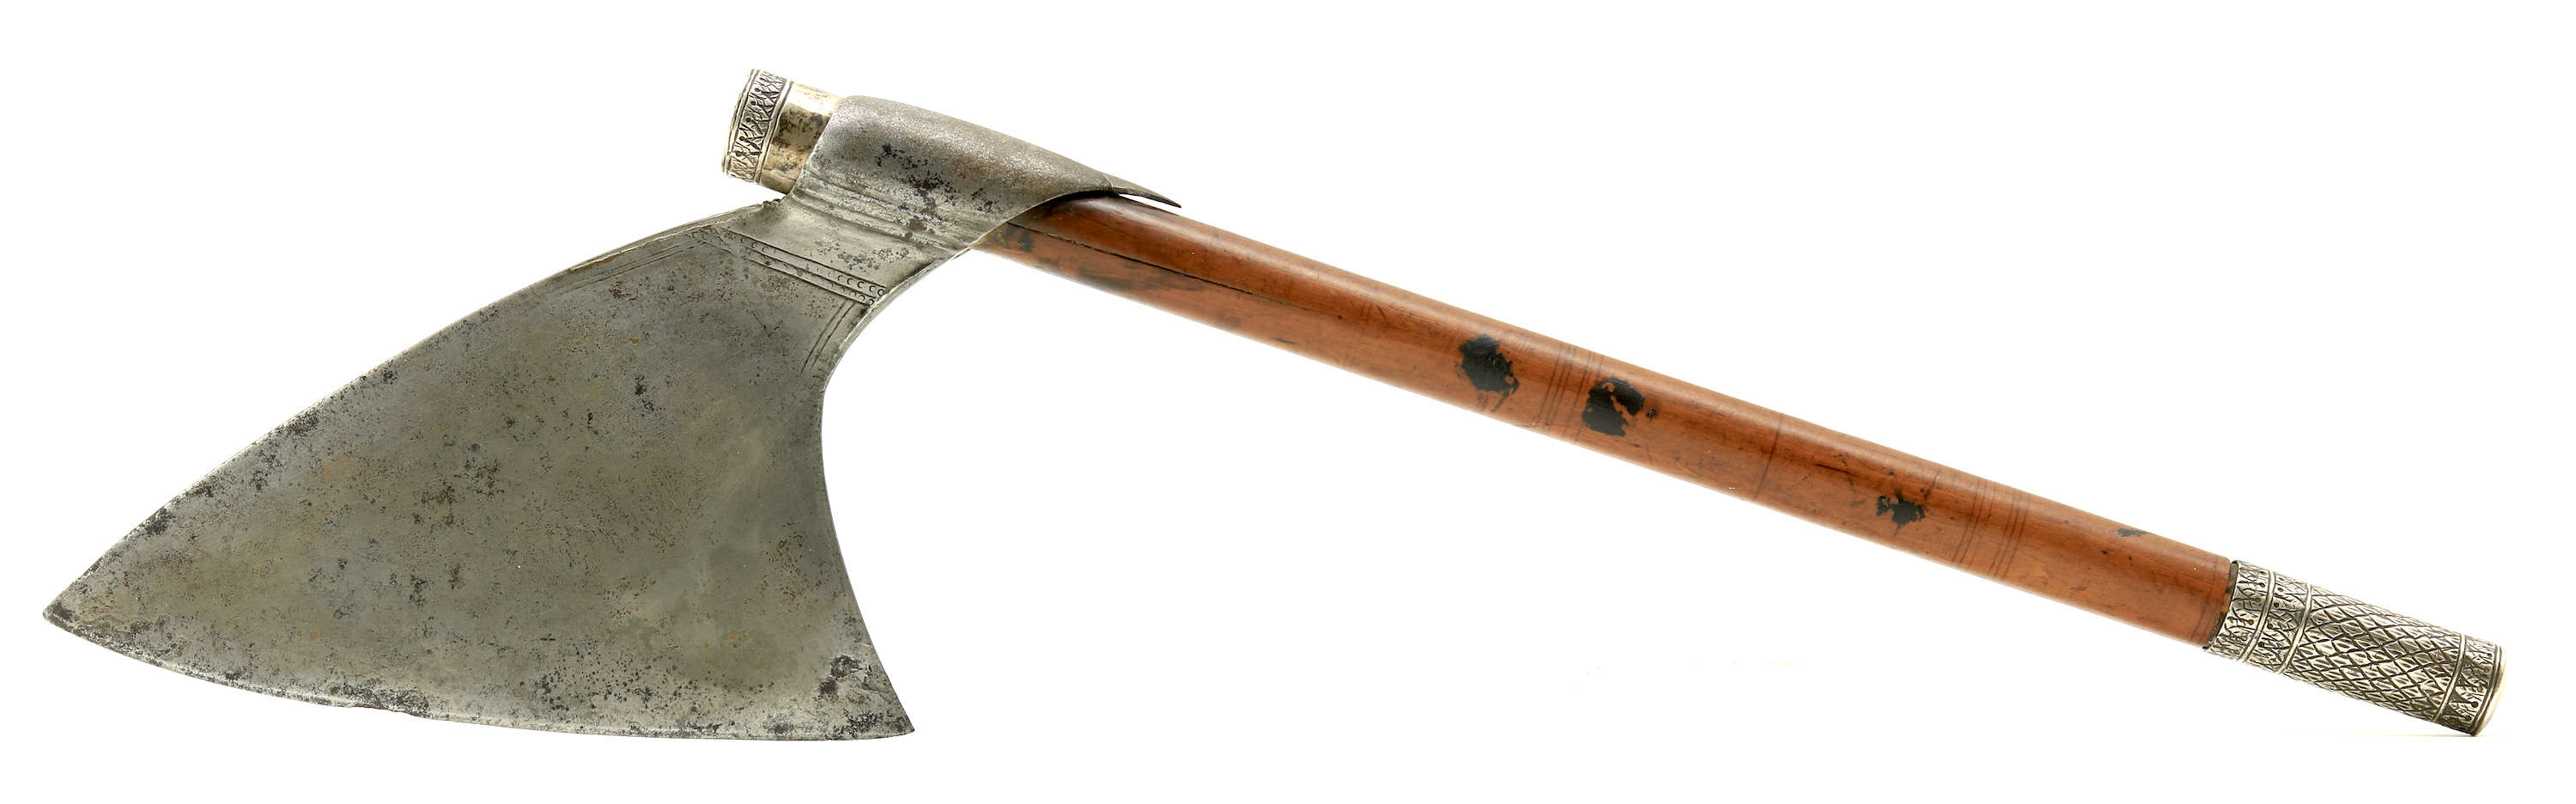 South Indian tungi axe overall